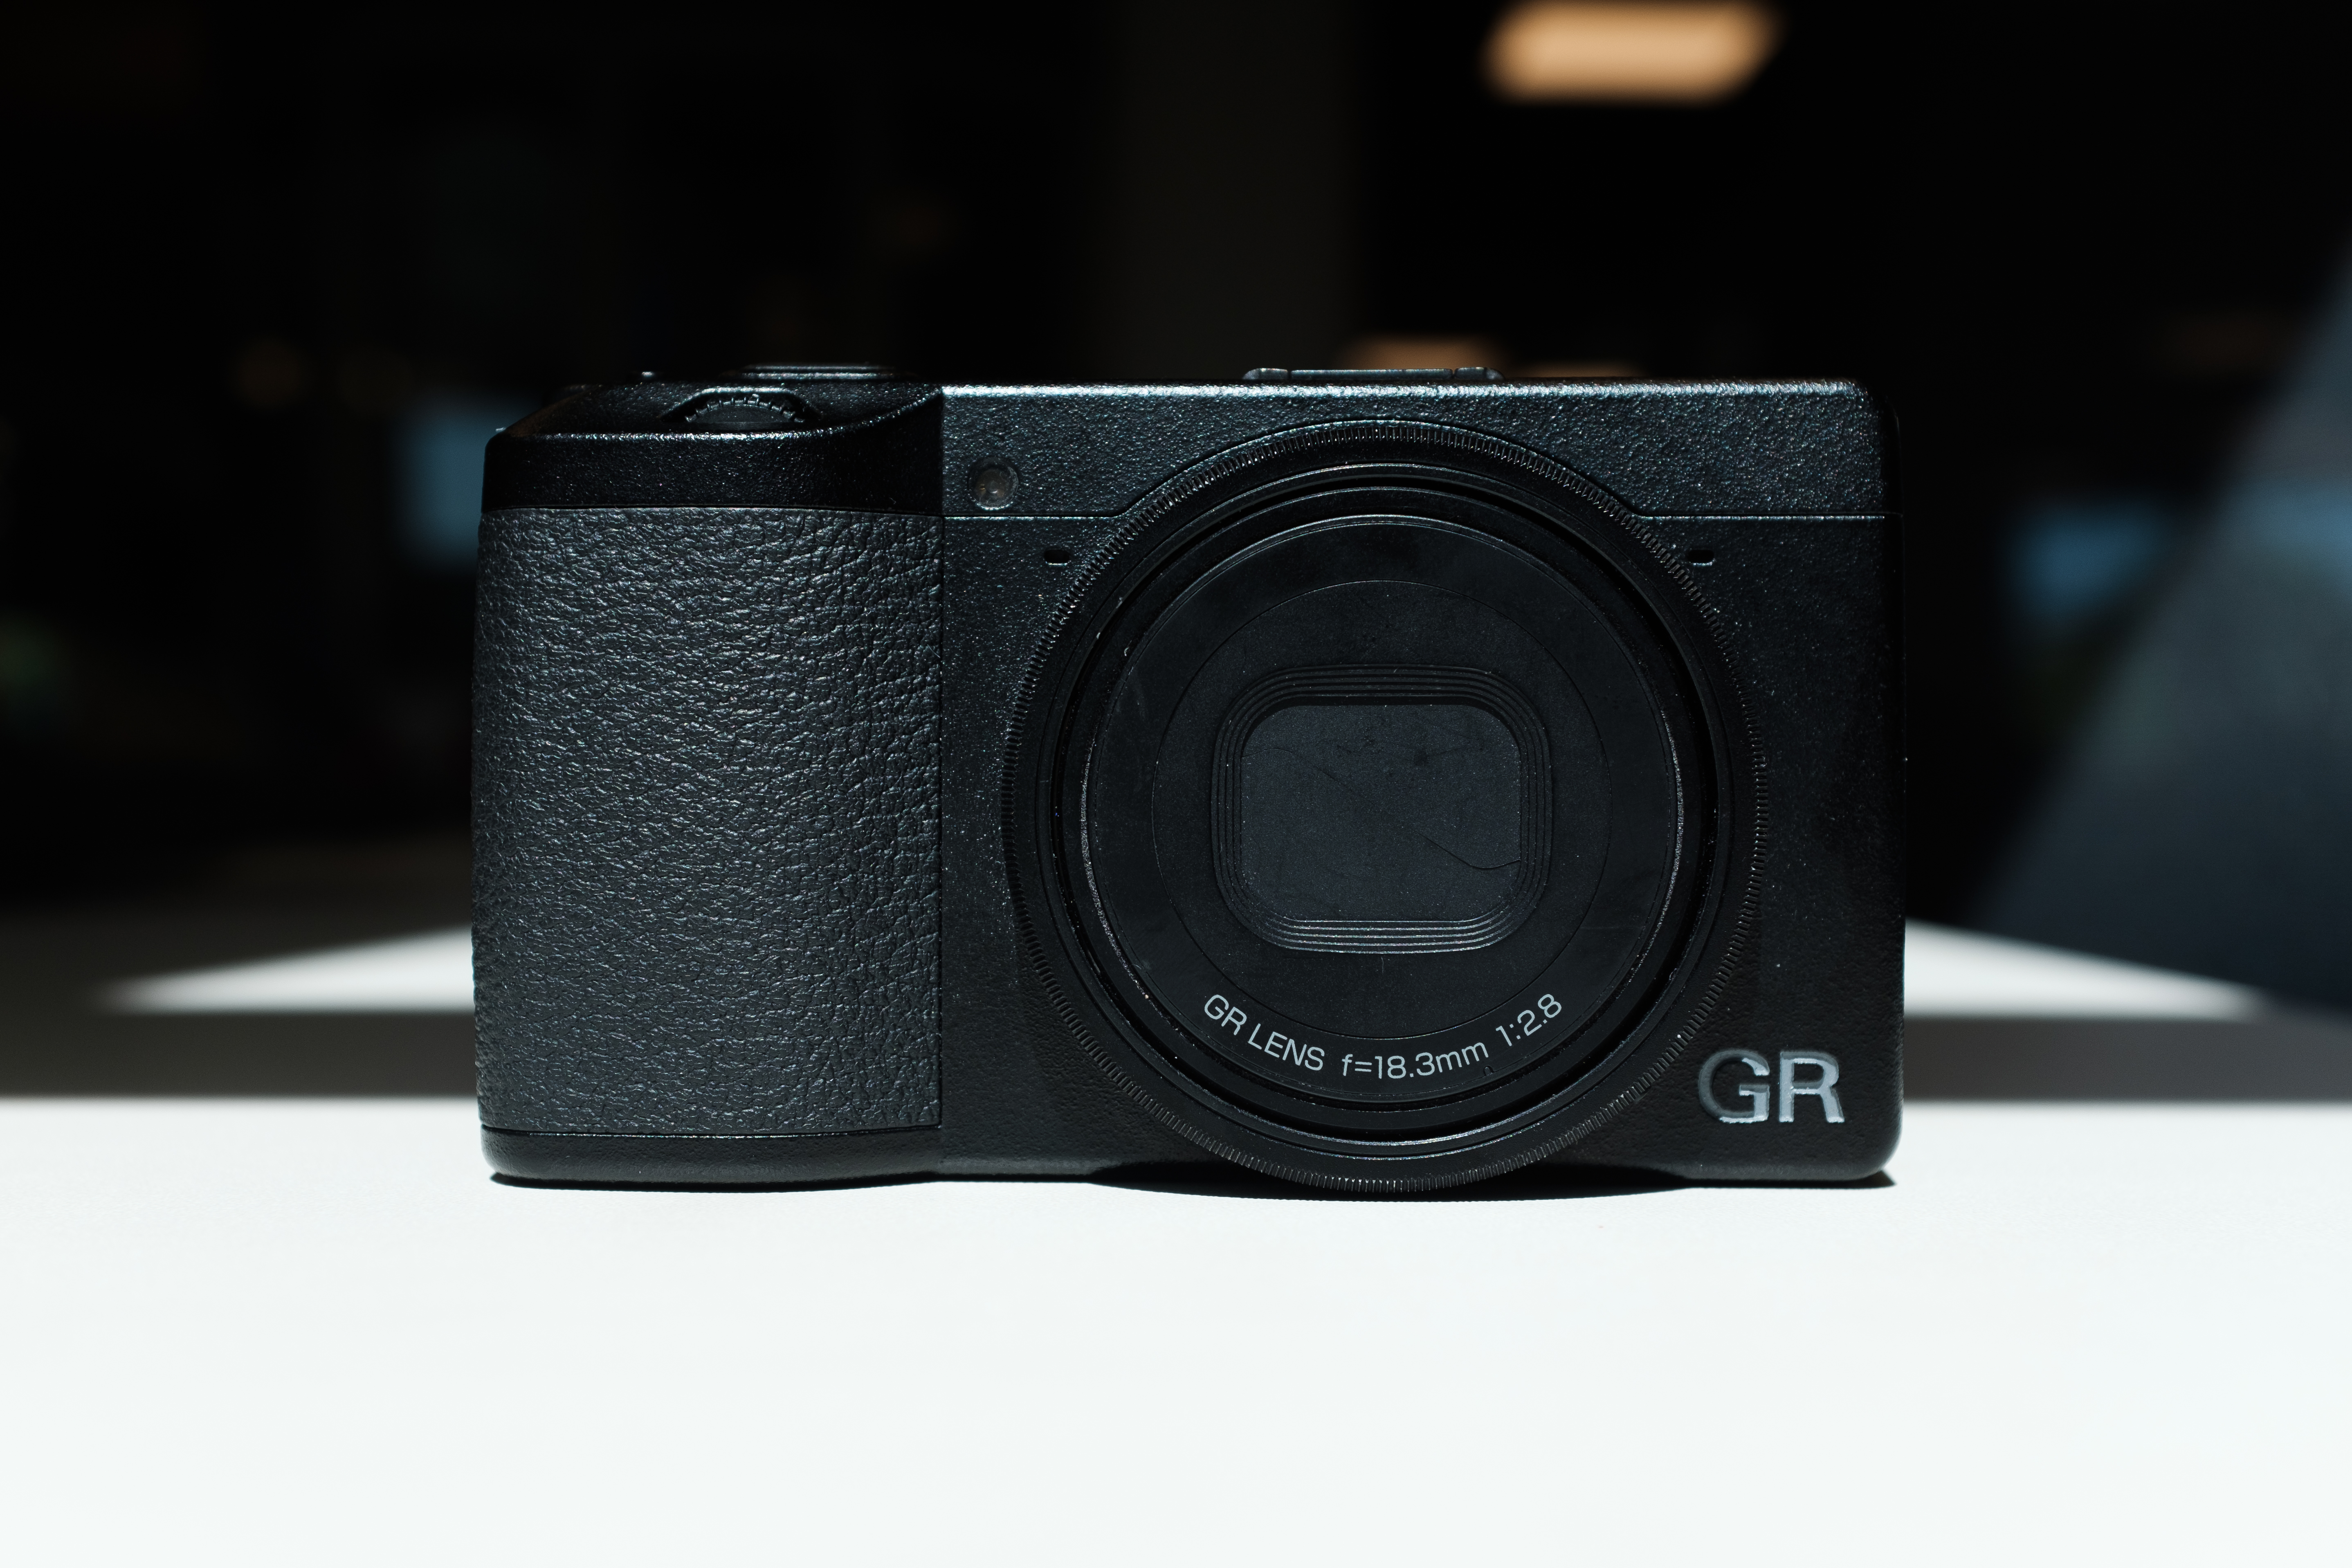 Ricoh GRIII review: A great street photography camera, but far from